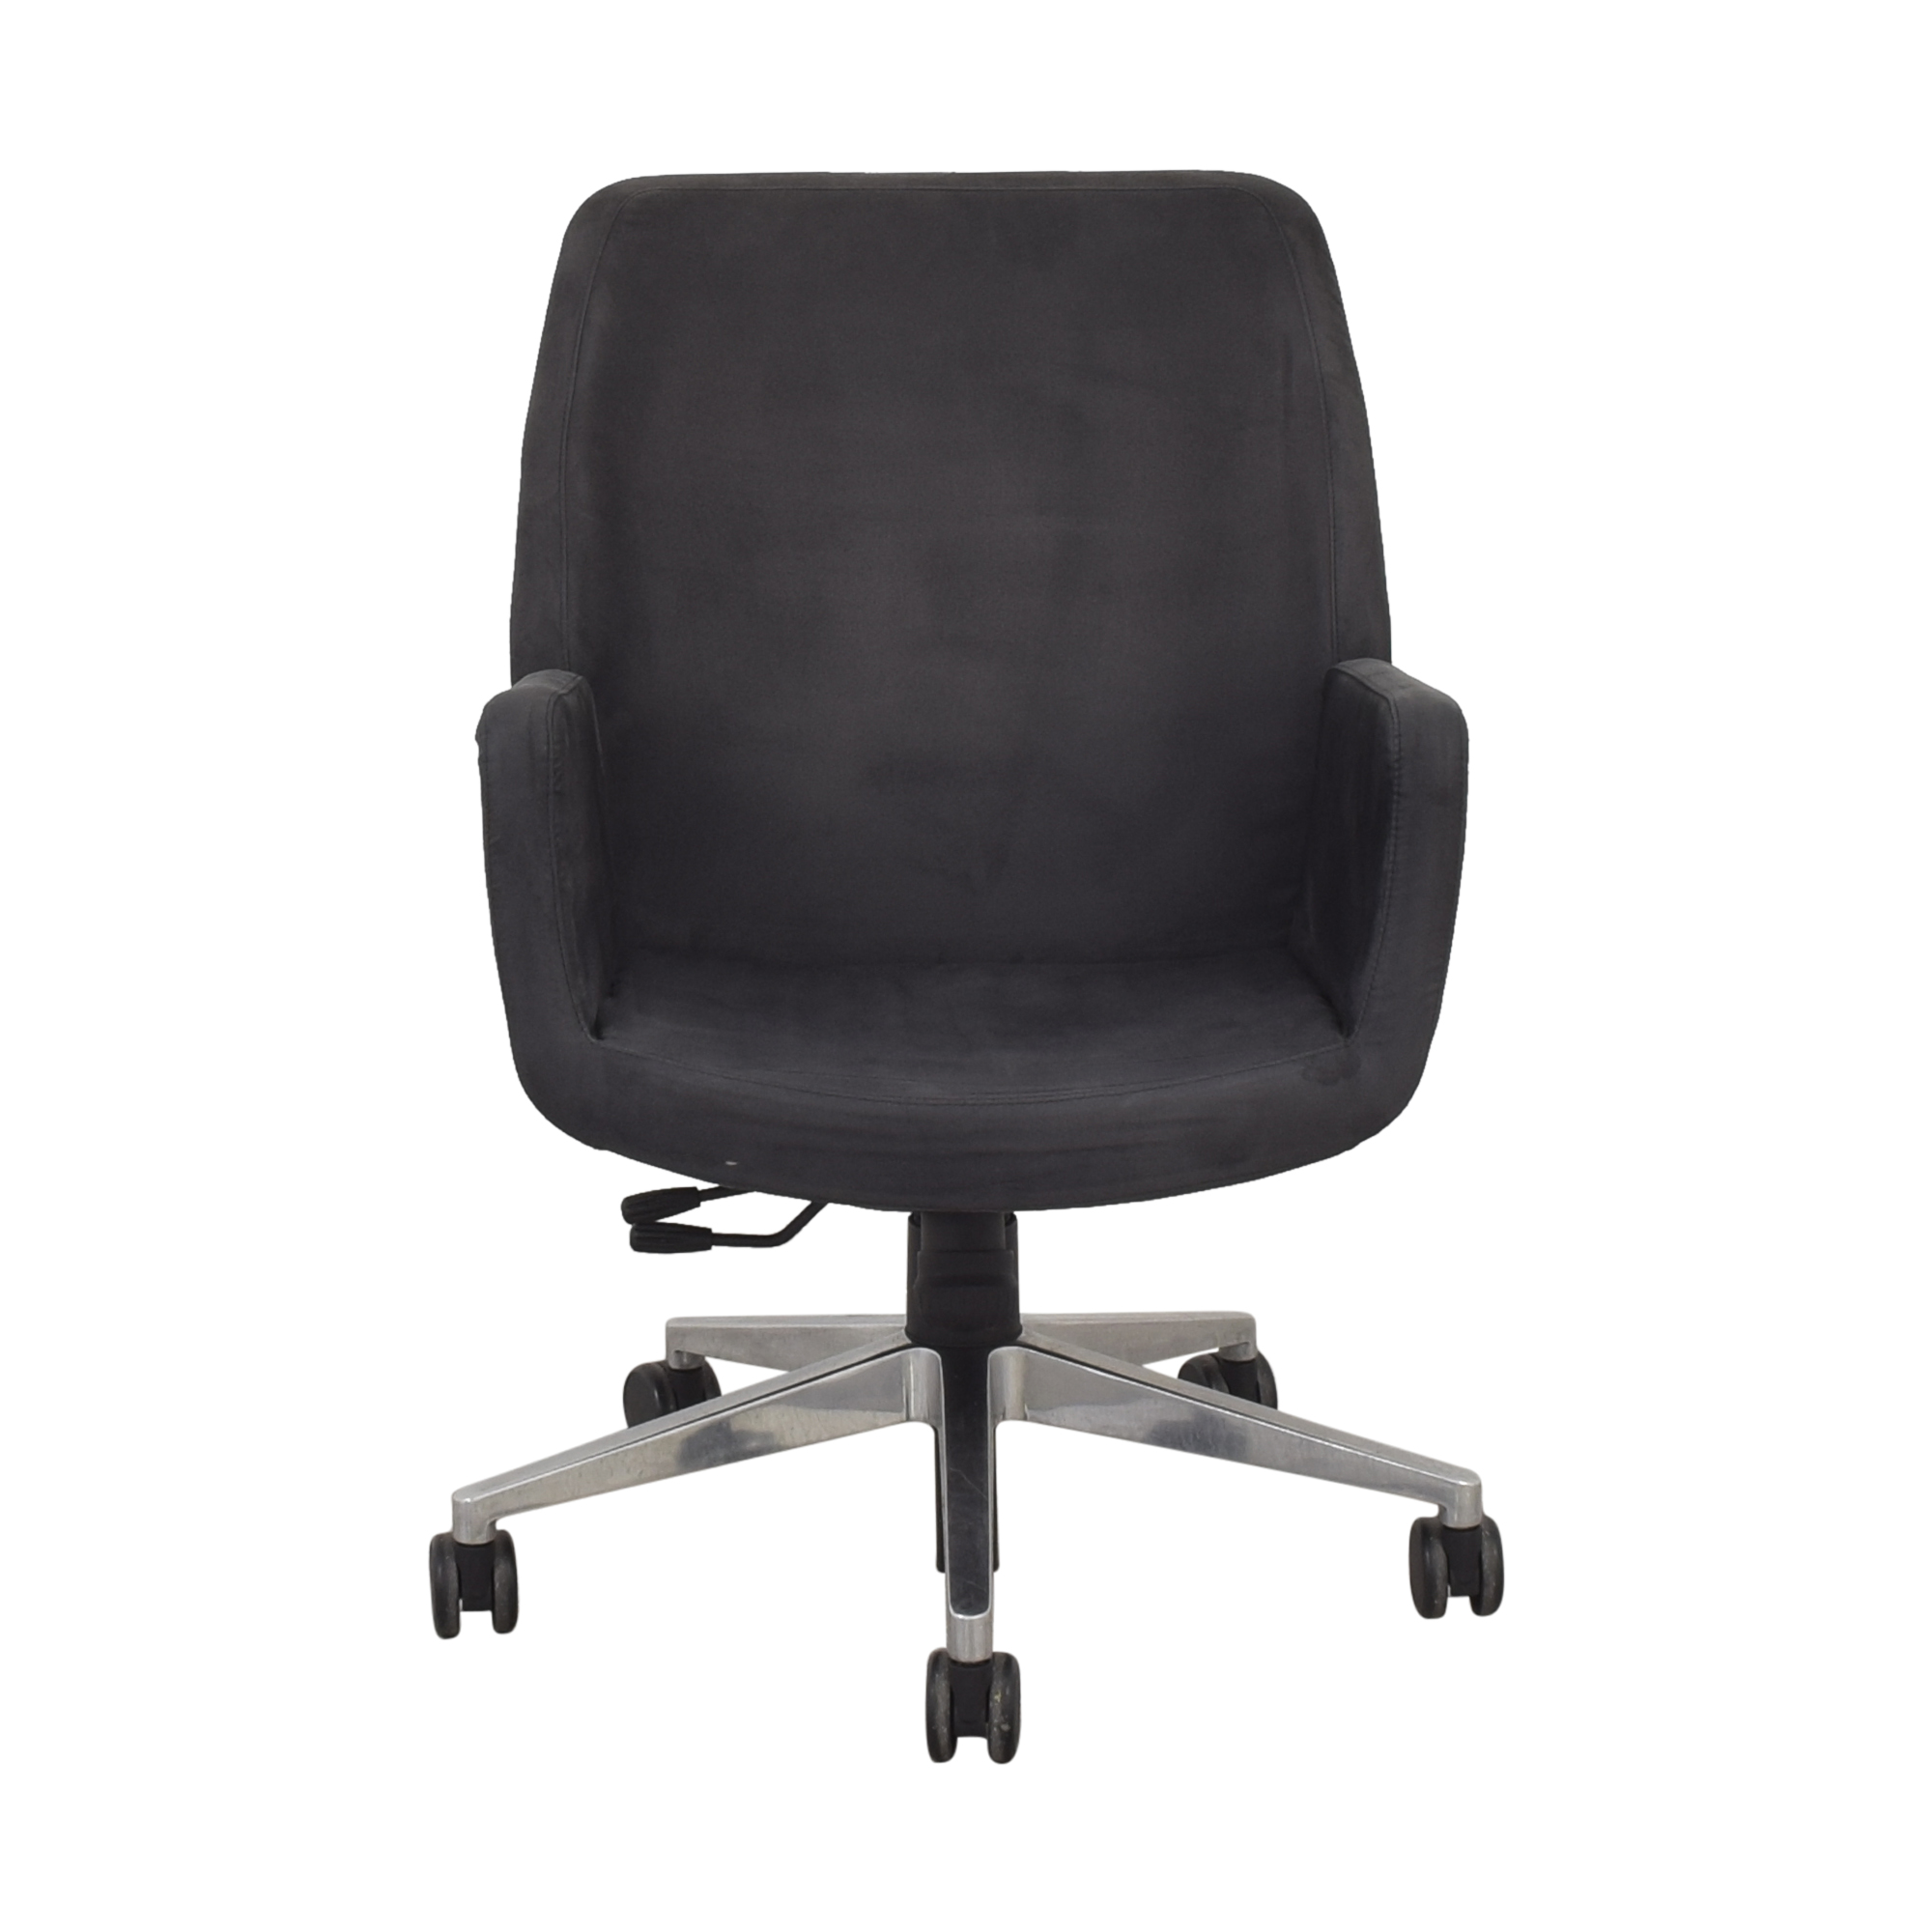 Steelcase Steelcase Coalesse Bindu Guest Chair second hand